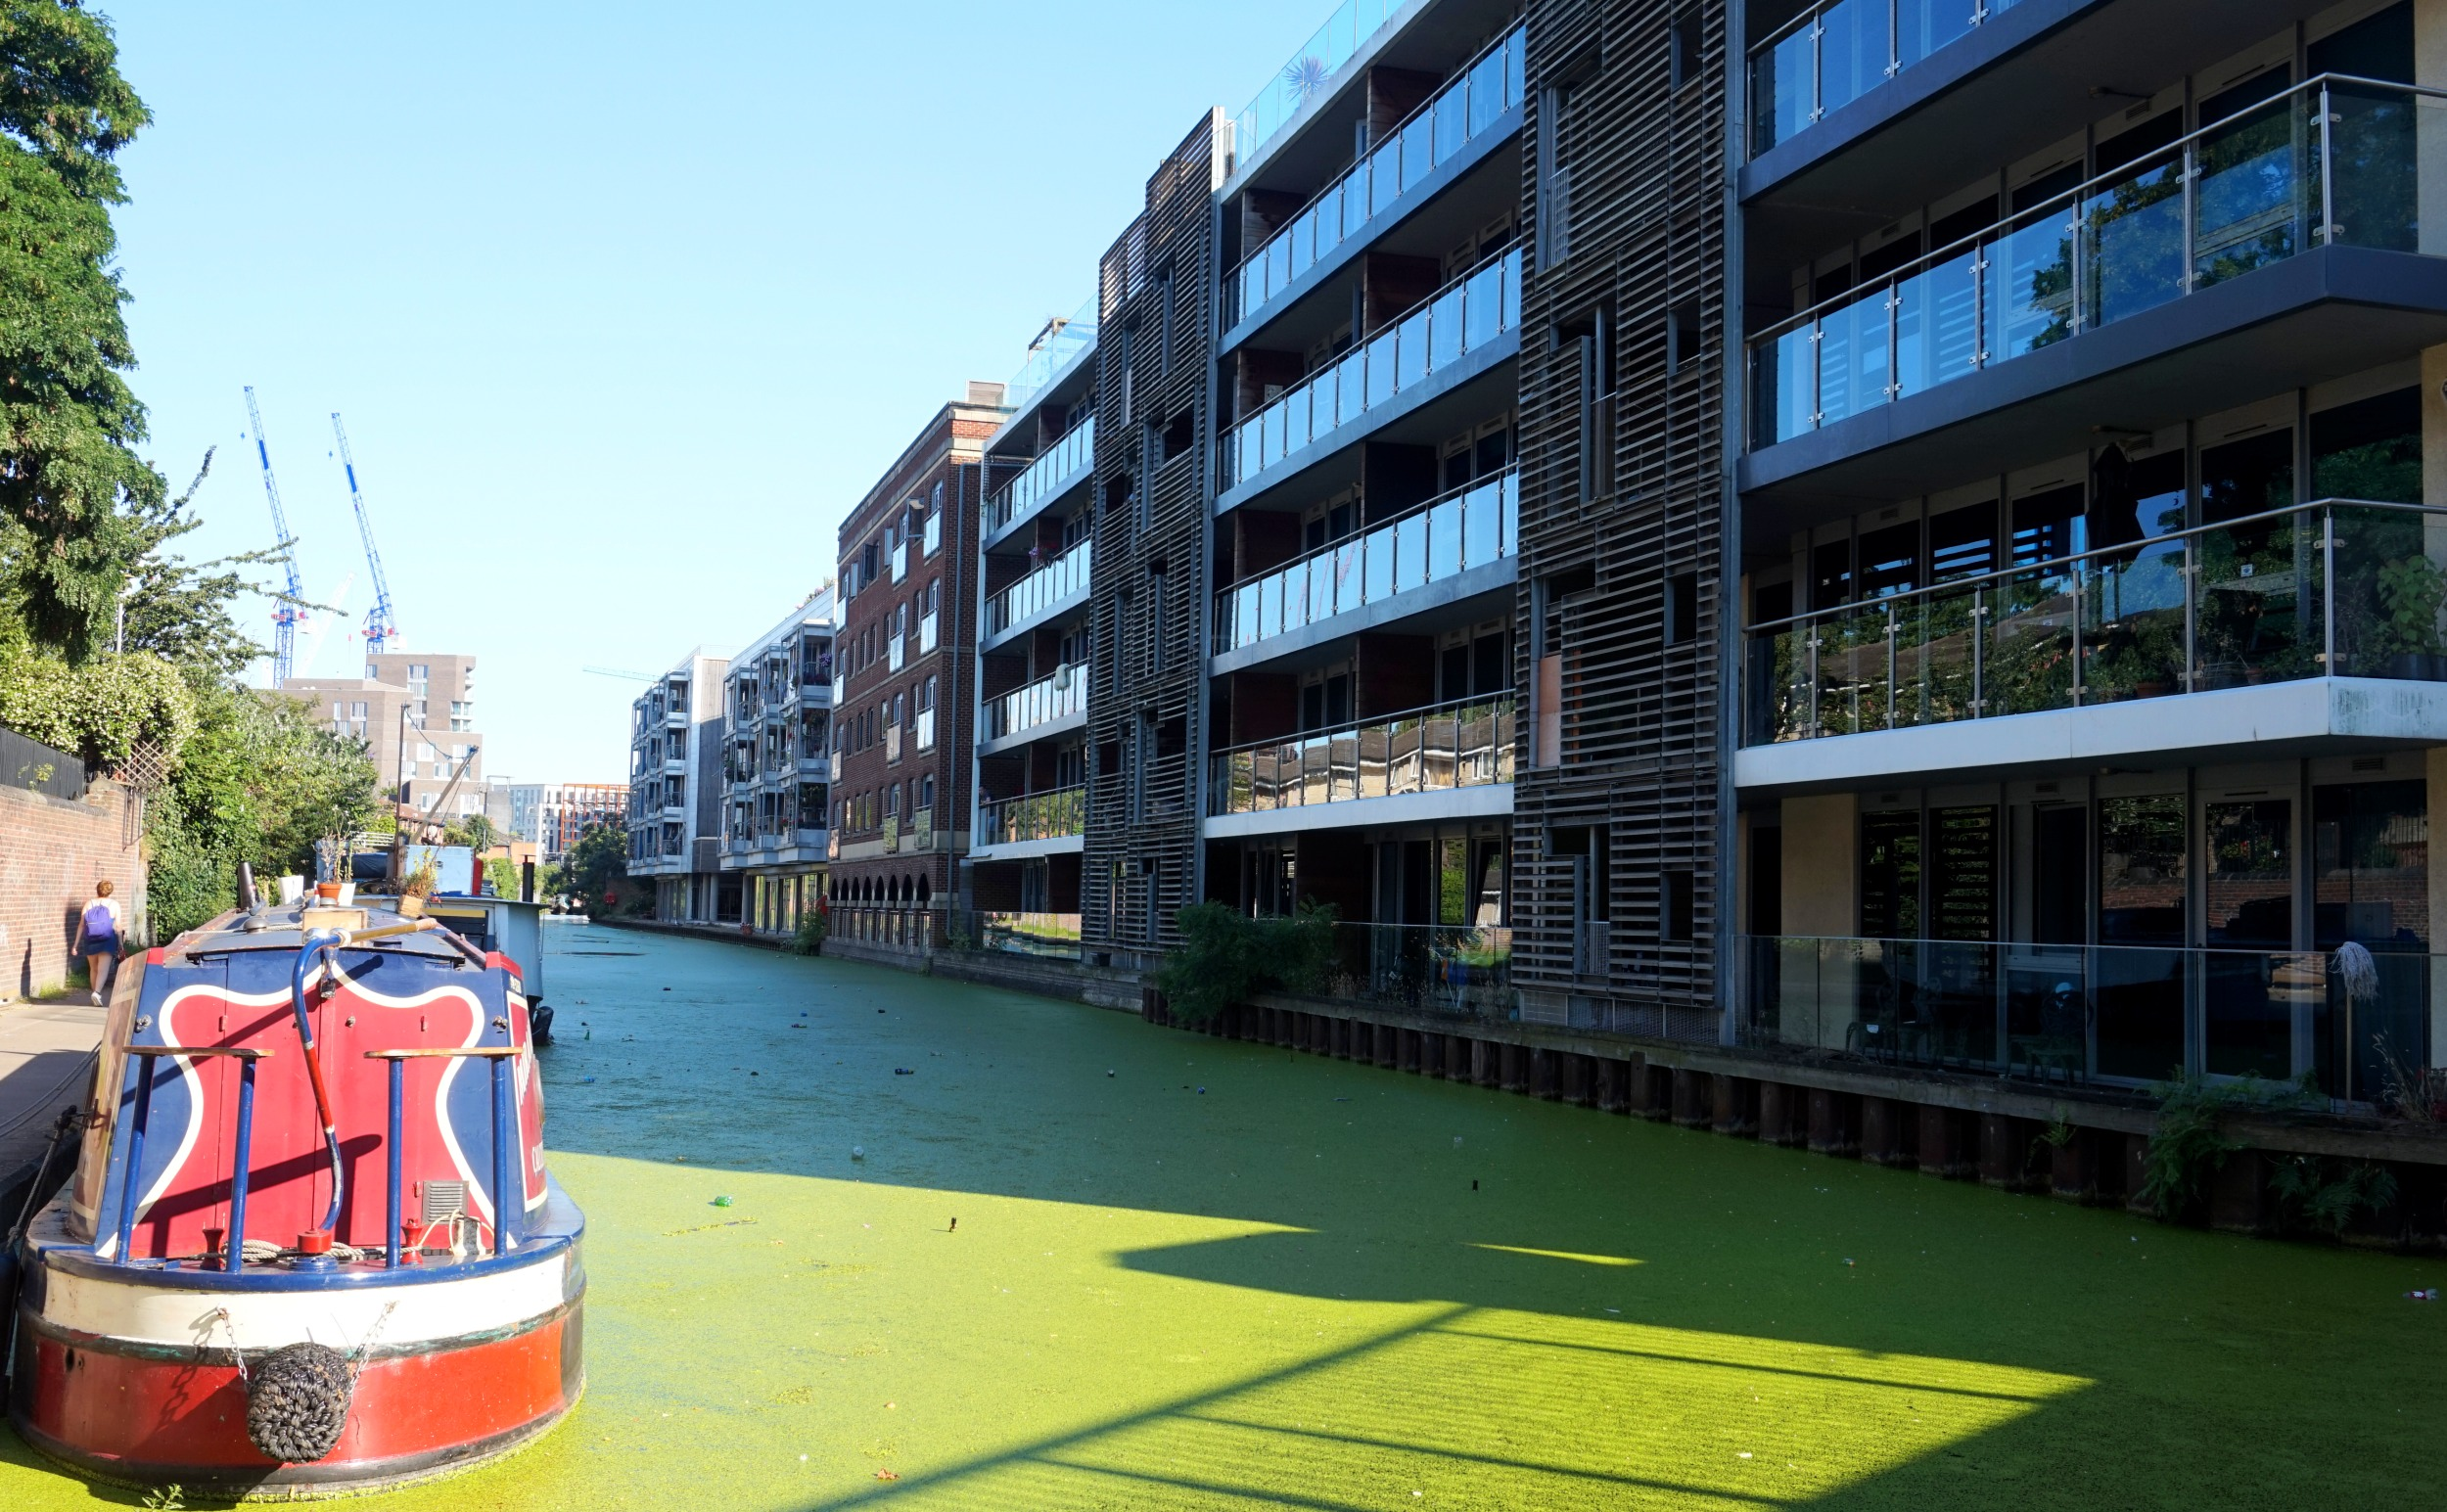 Regents-Canal-65